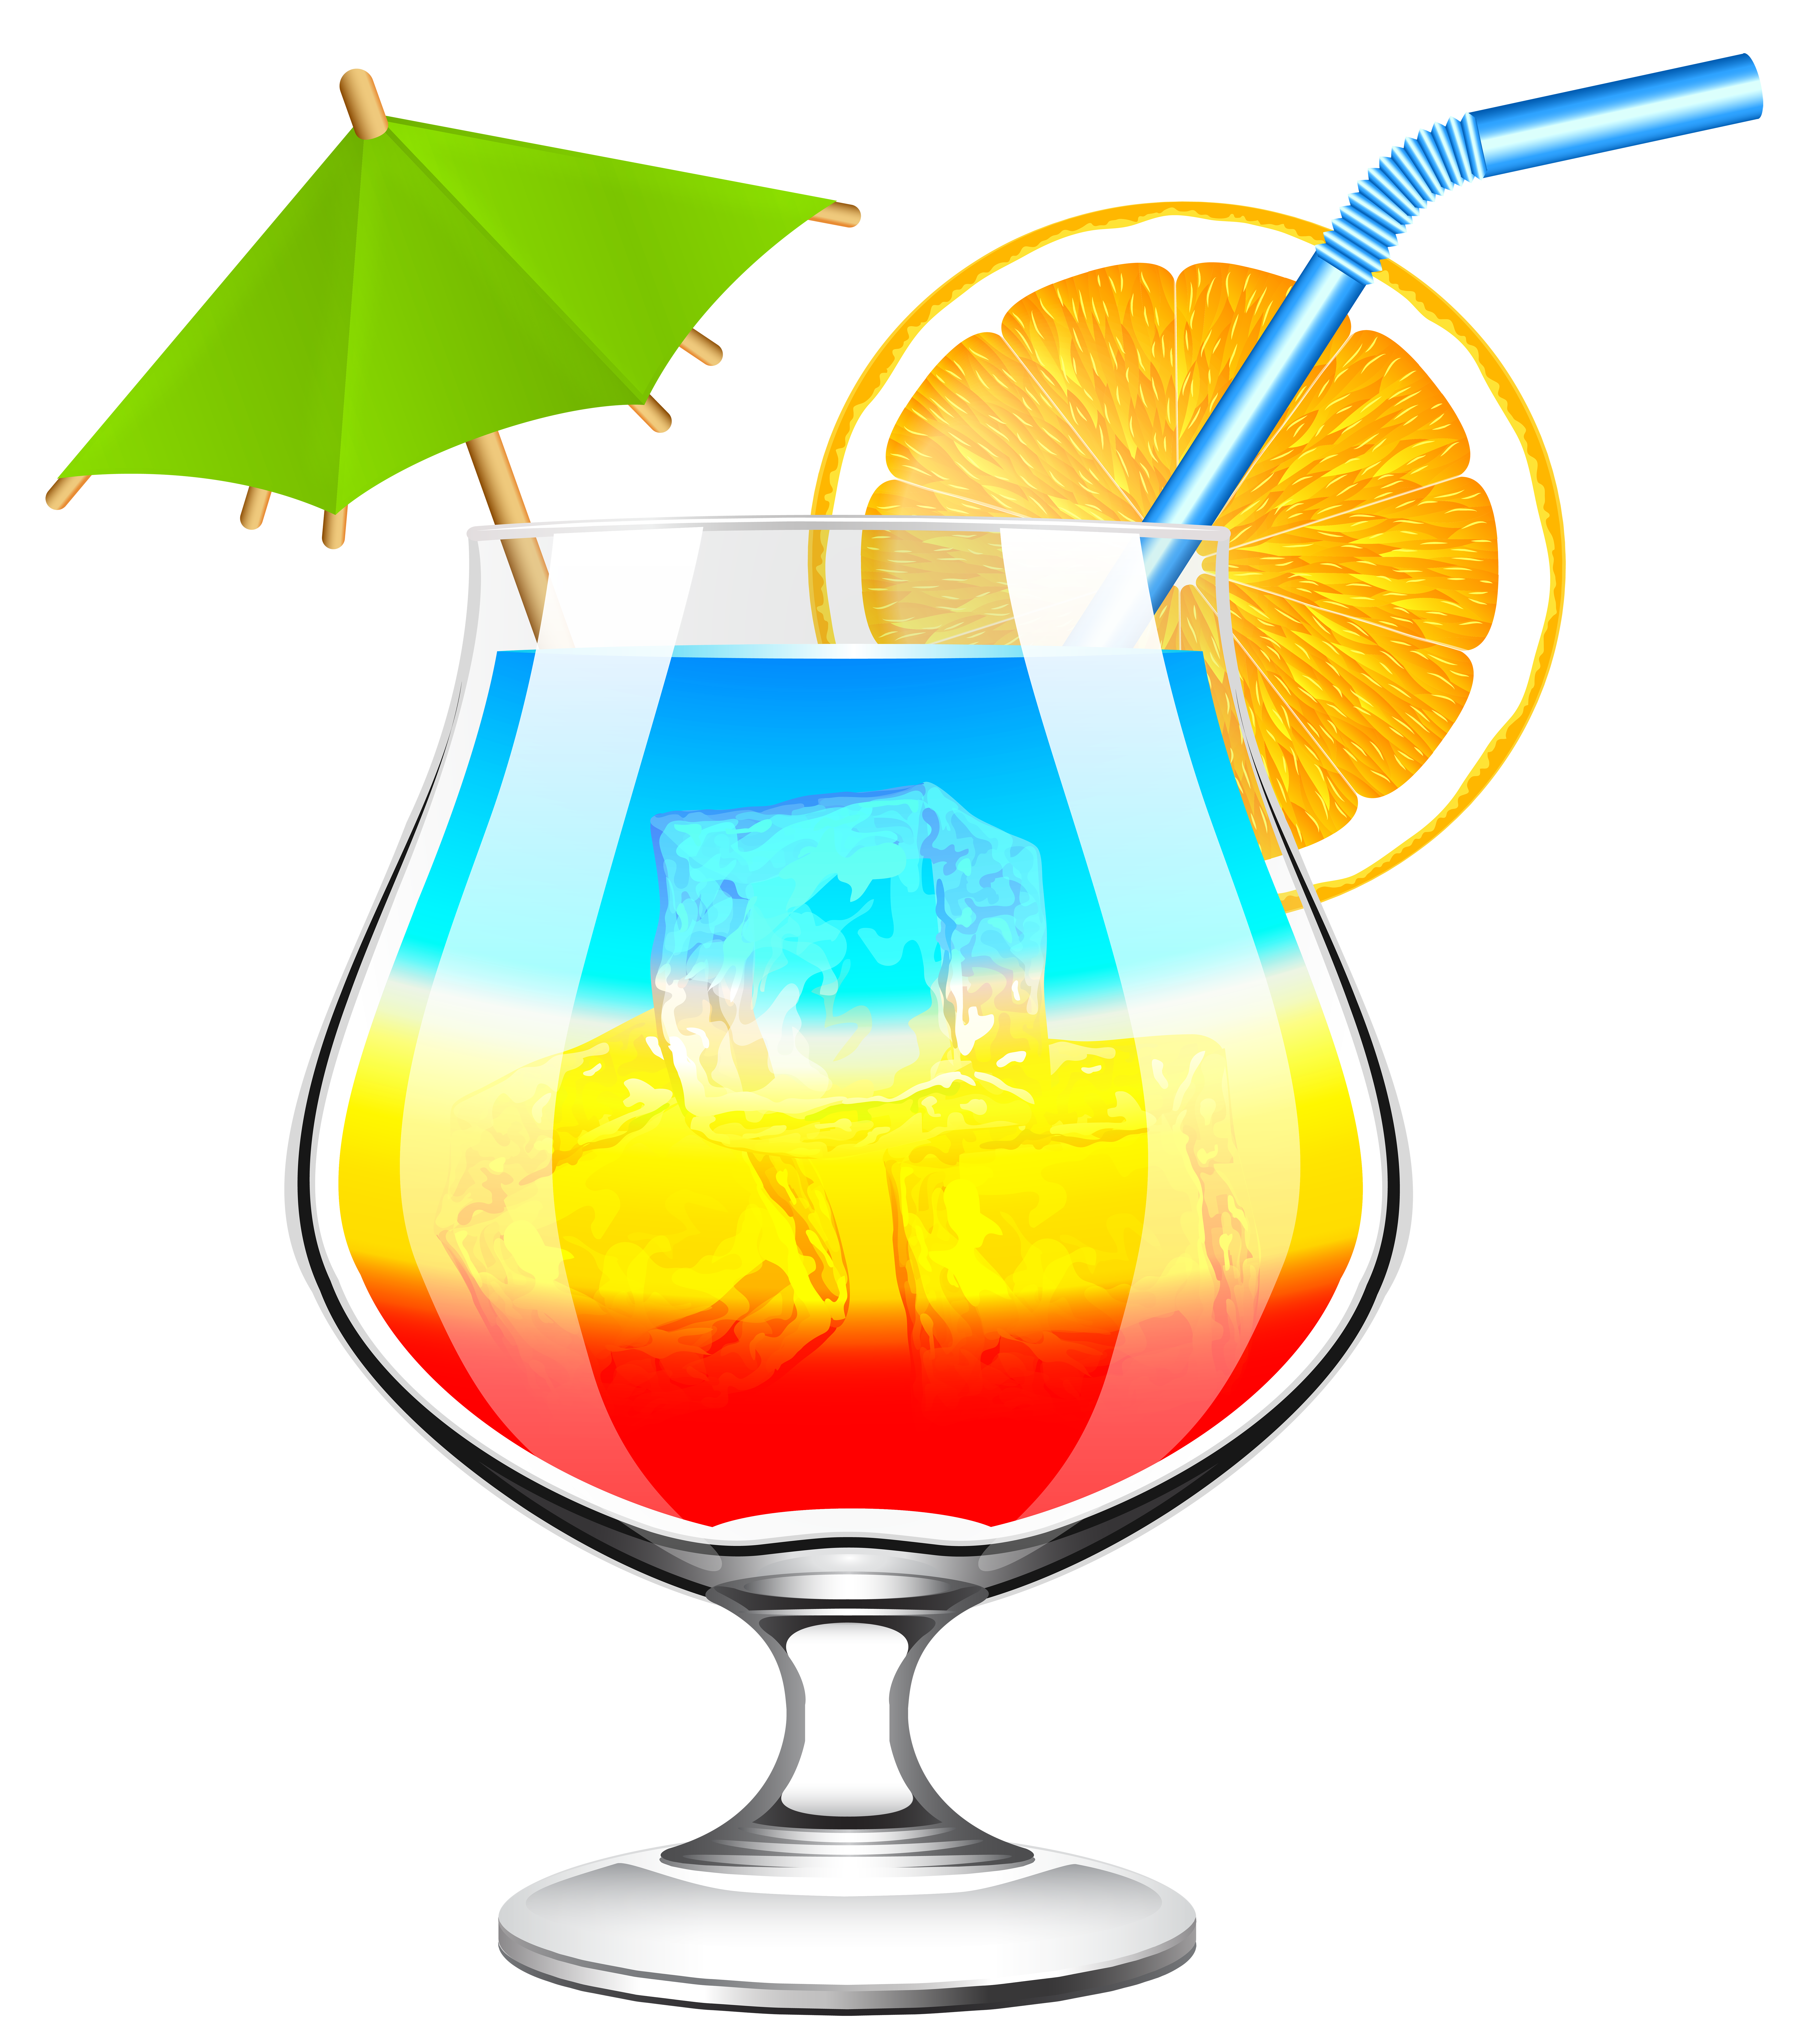 Drink clipart transparent Transparent View Gallery size Image